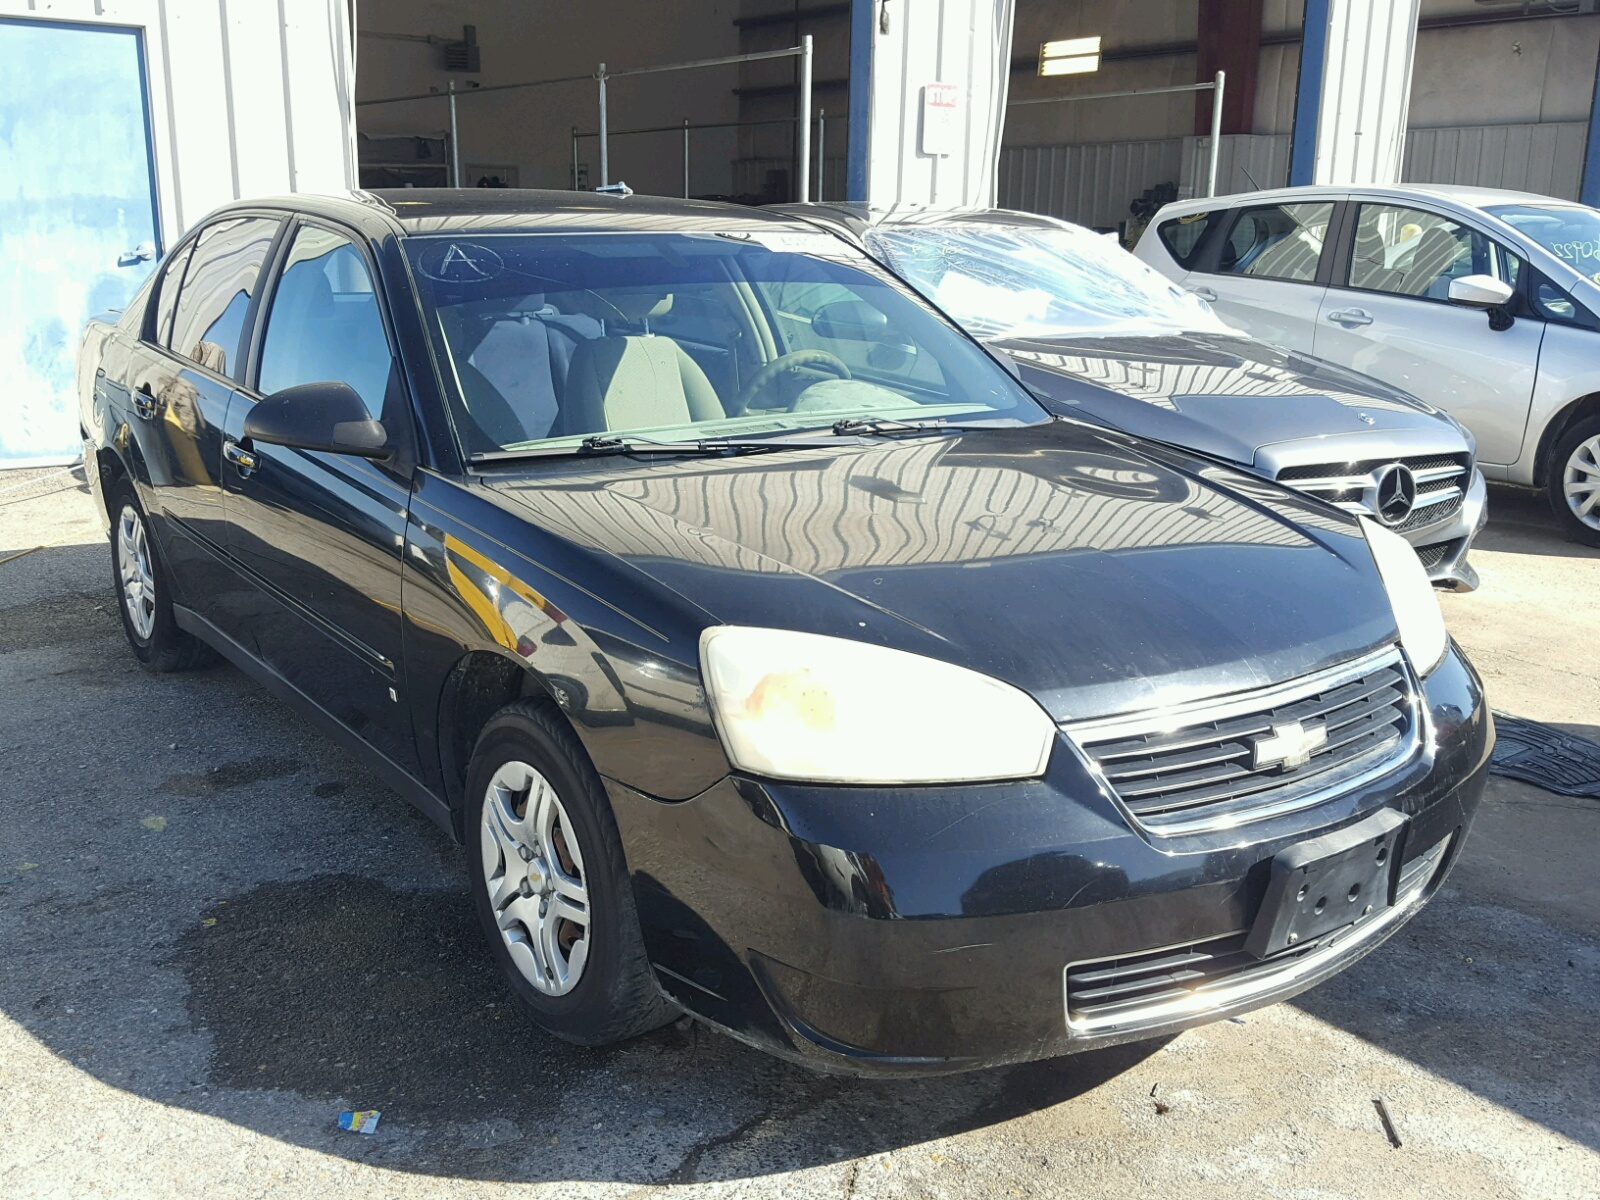 COPART Lot #23165247 2006 CHEVROLET MALIBU LS